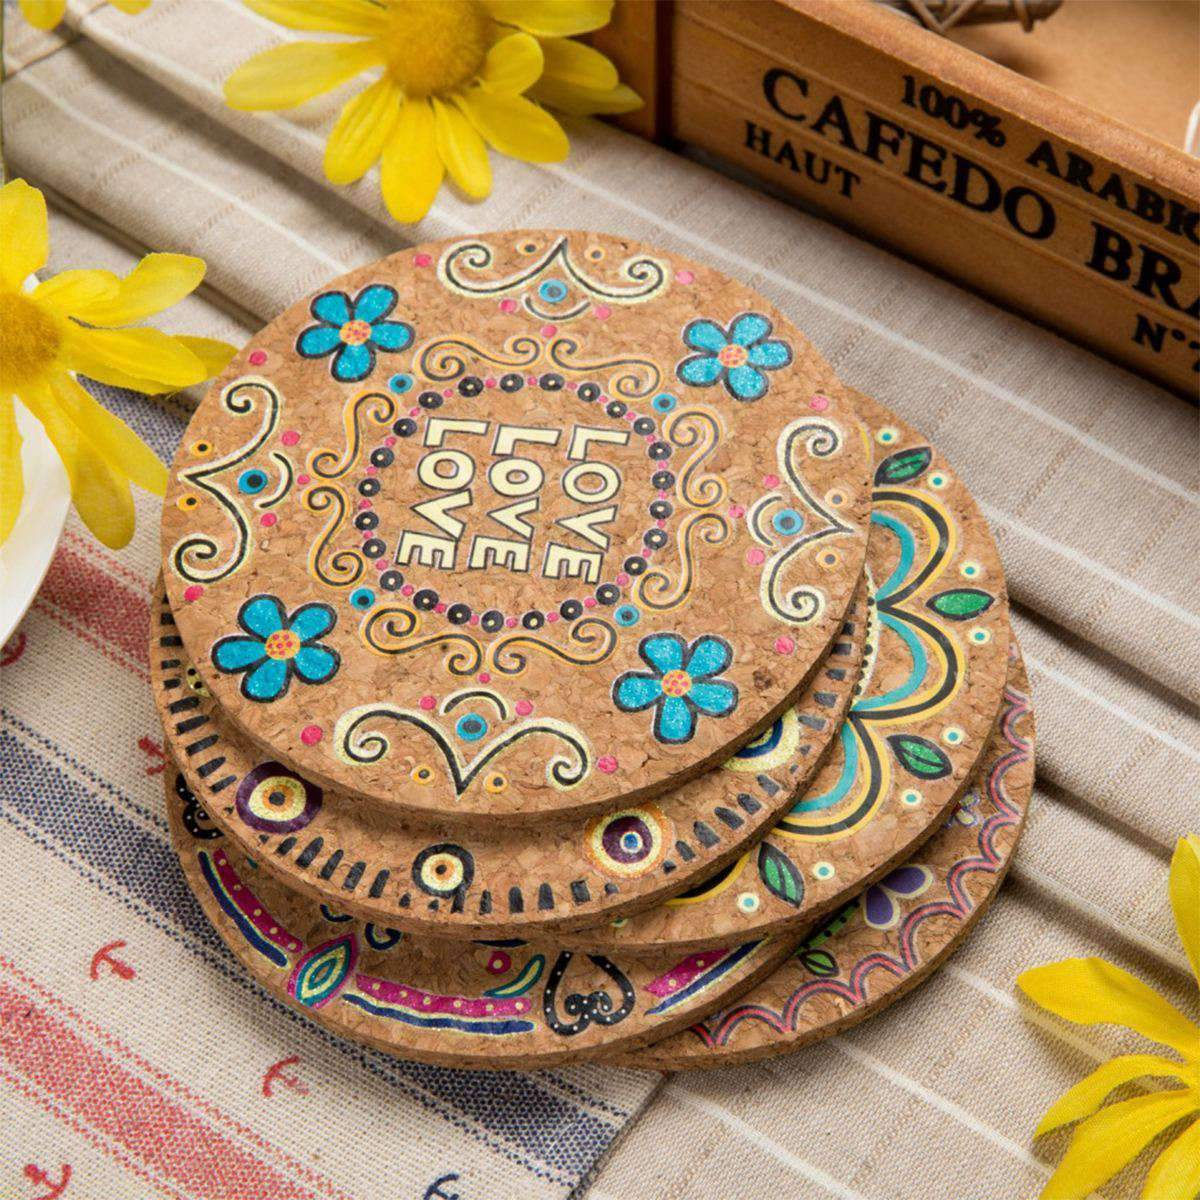 Cork Coasters (5) - Treehouse Supply - Plastic free, ecofriendly products